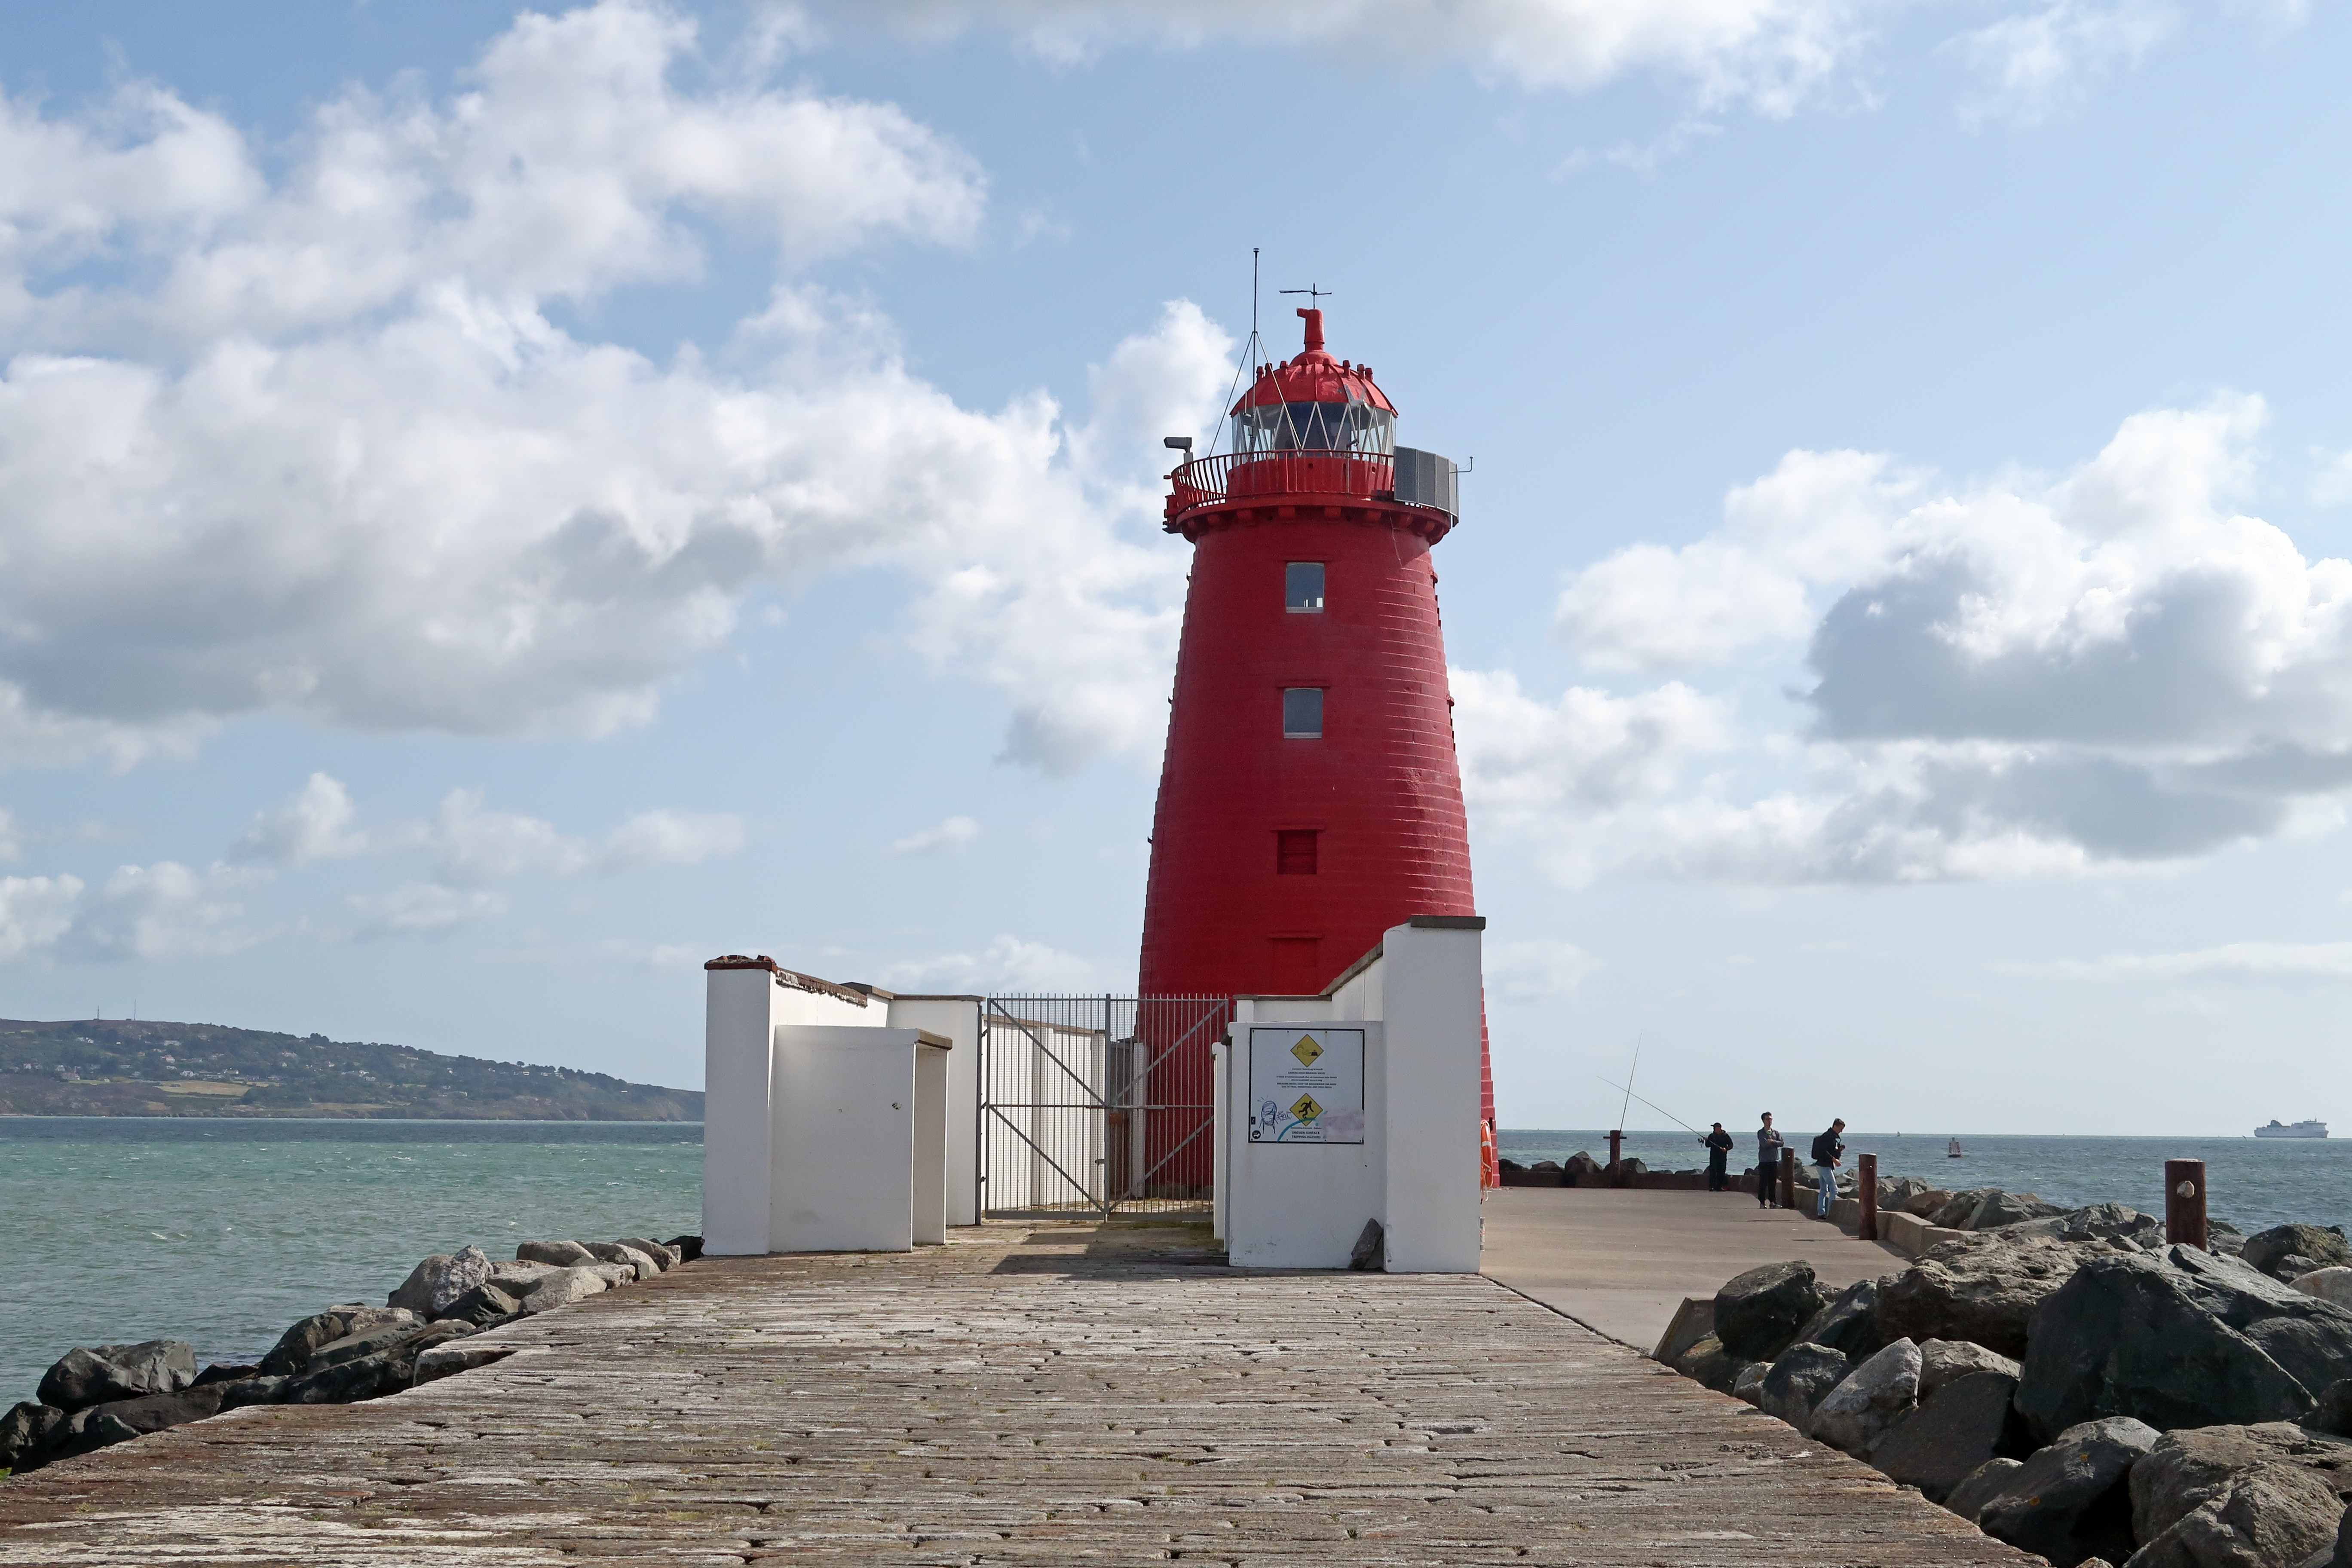 02 Poolbeg Lighthouse